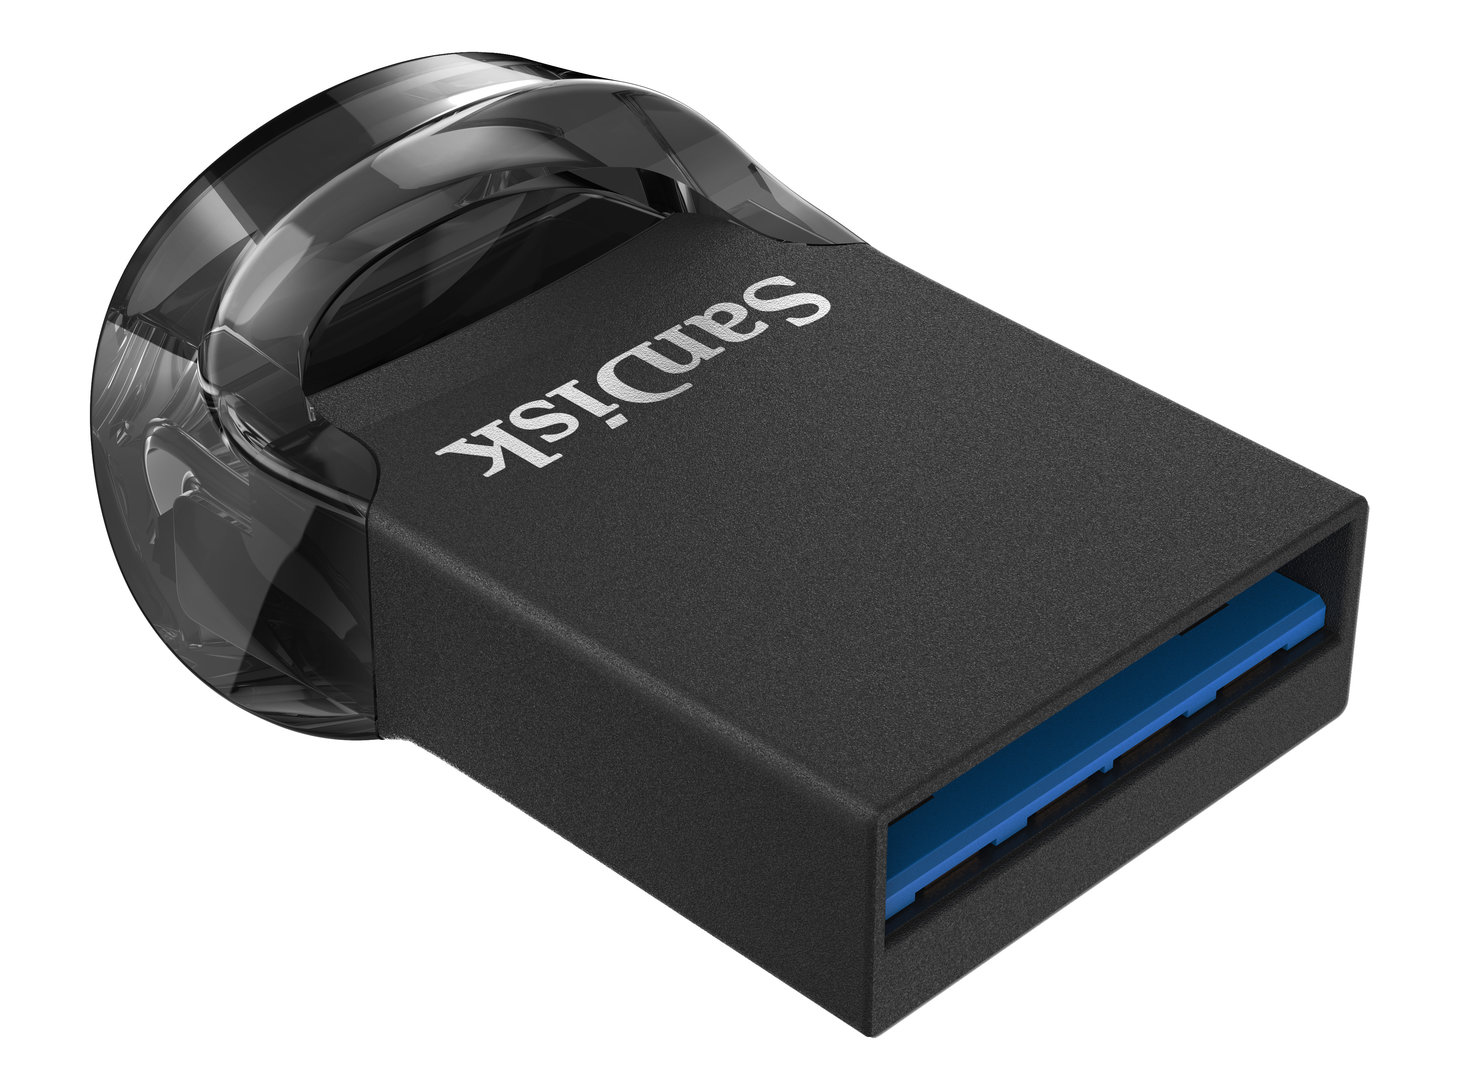 SanDisk Ultra Fit USB 3.1 256 GB